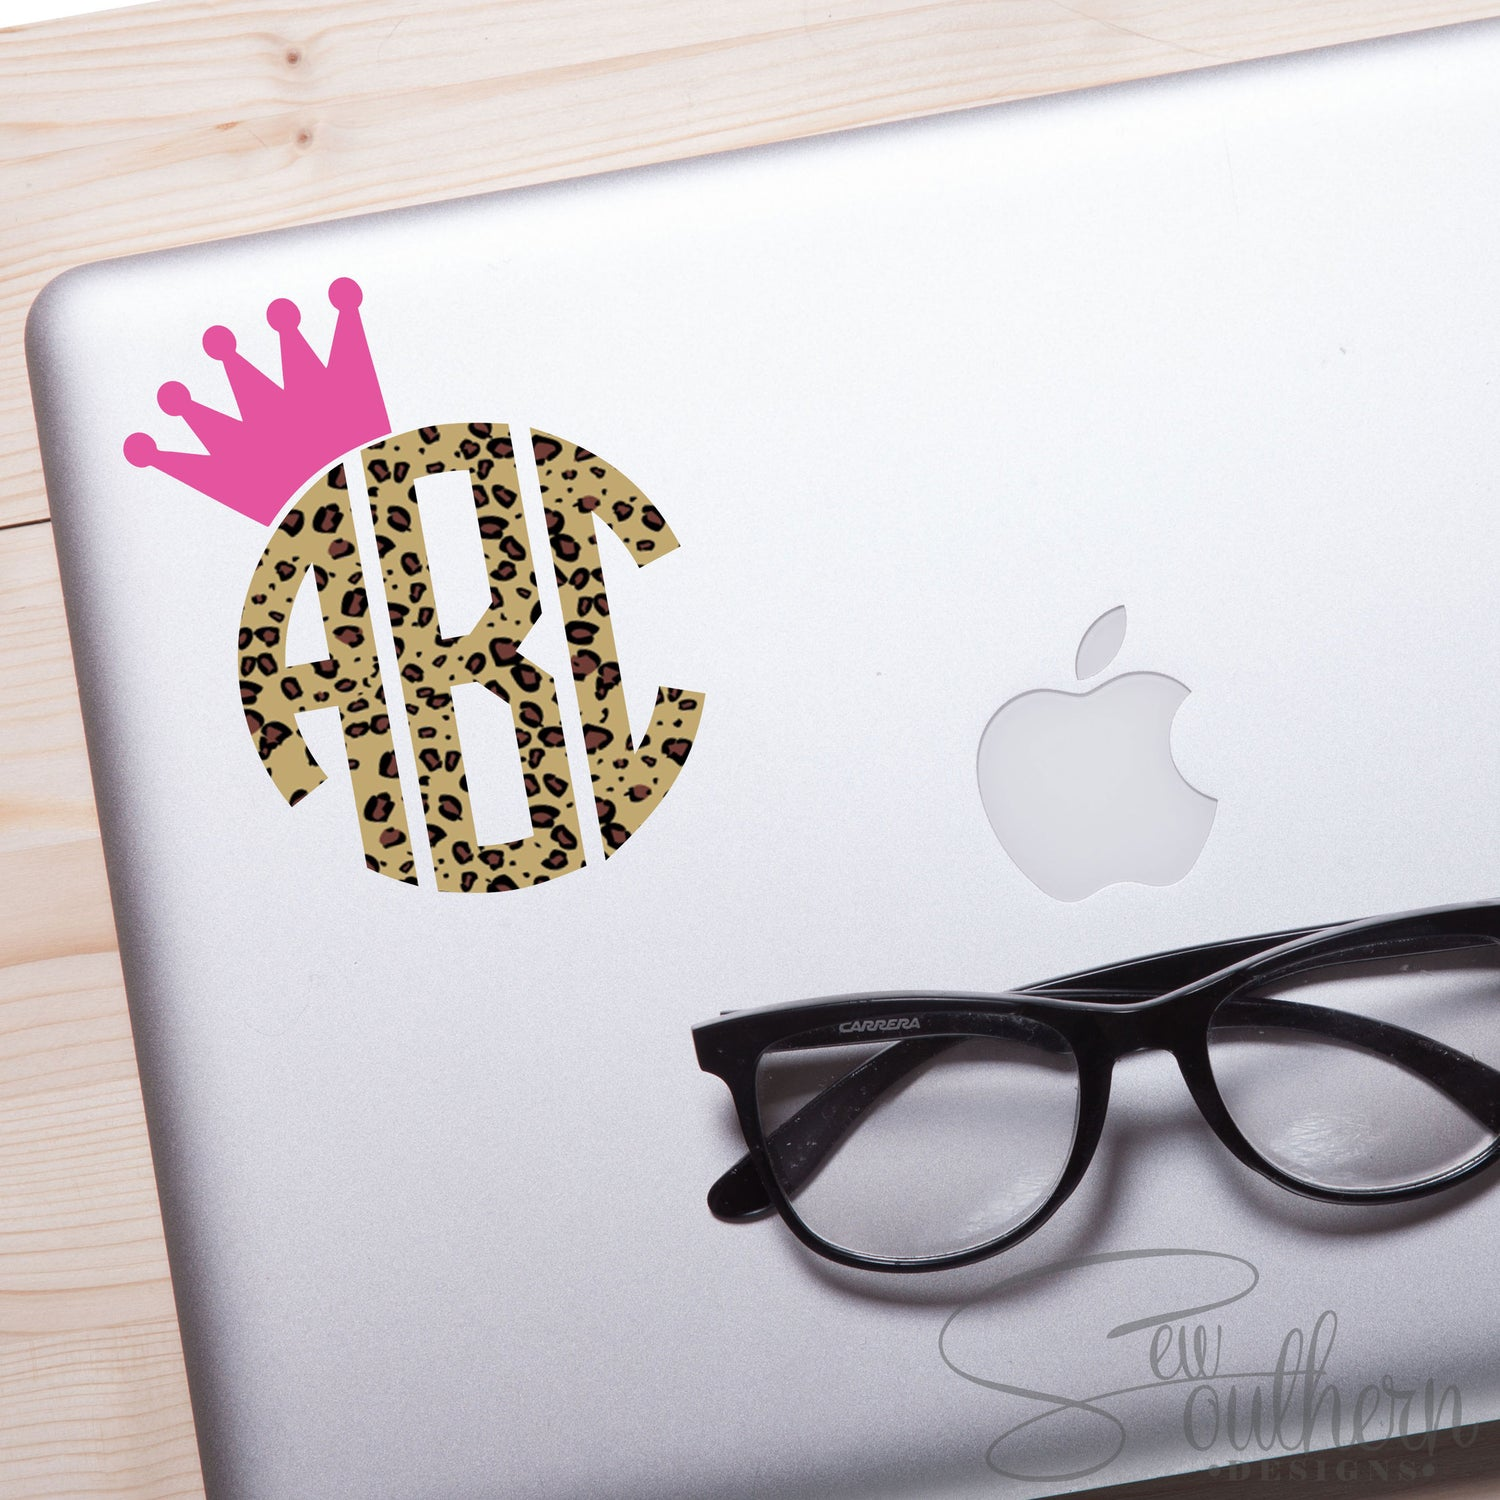 Leopard/Cheetah Print with Crown Monogram Decal